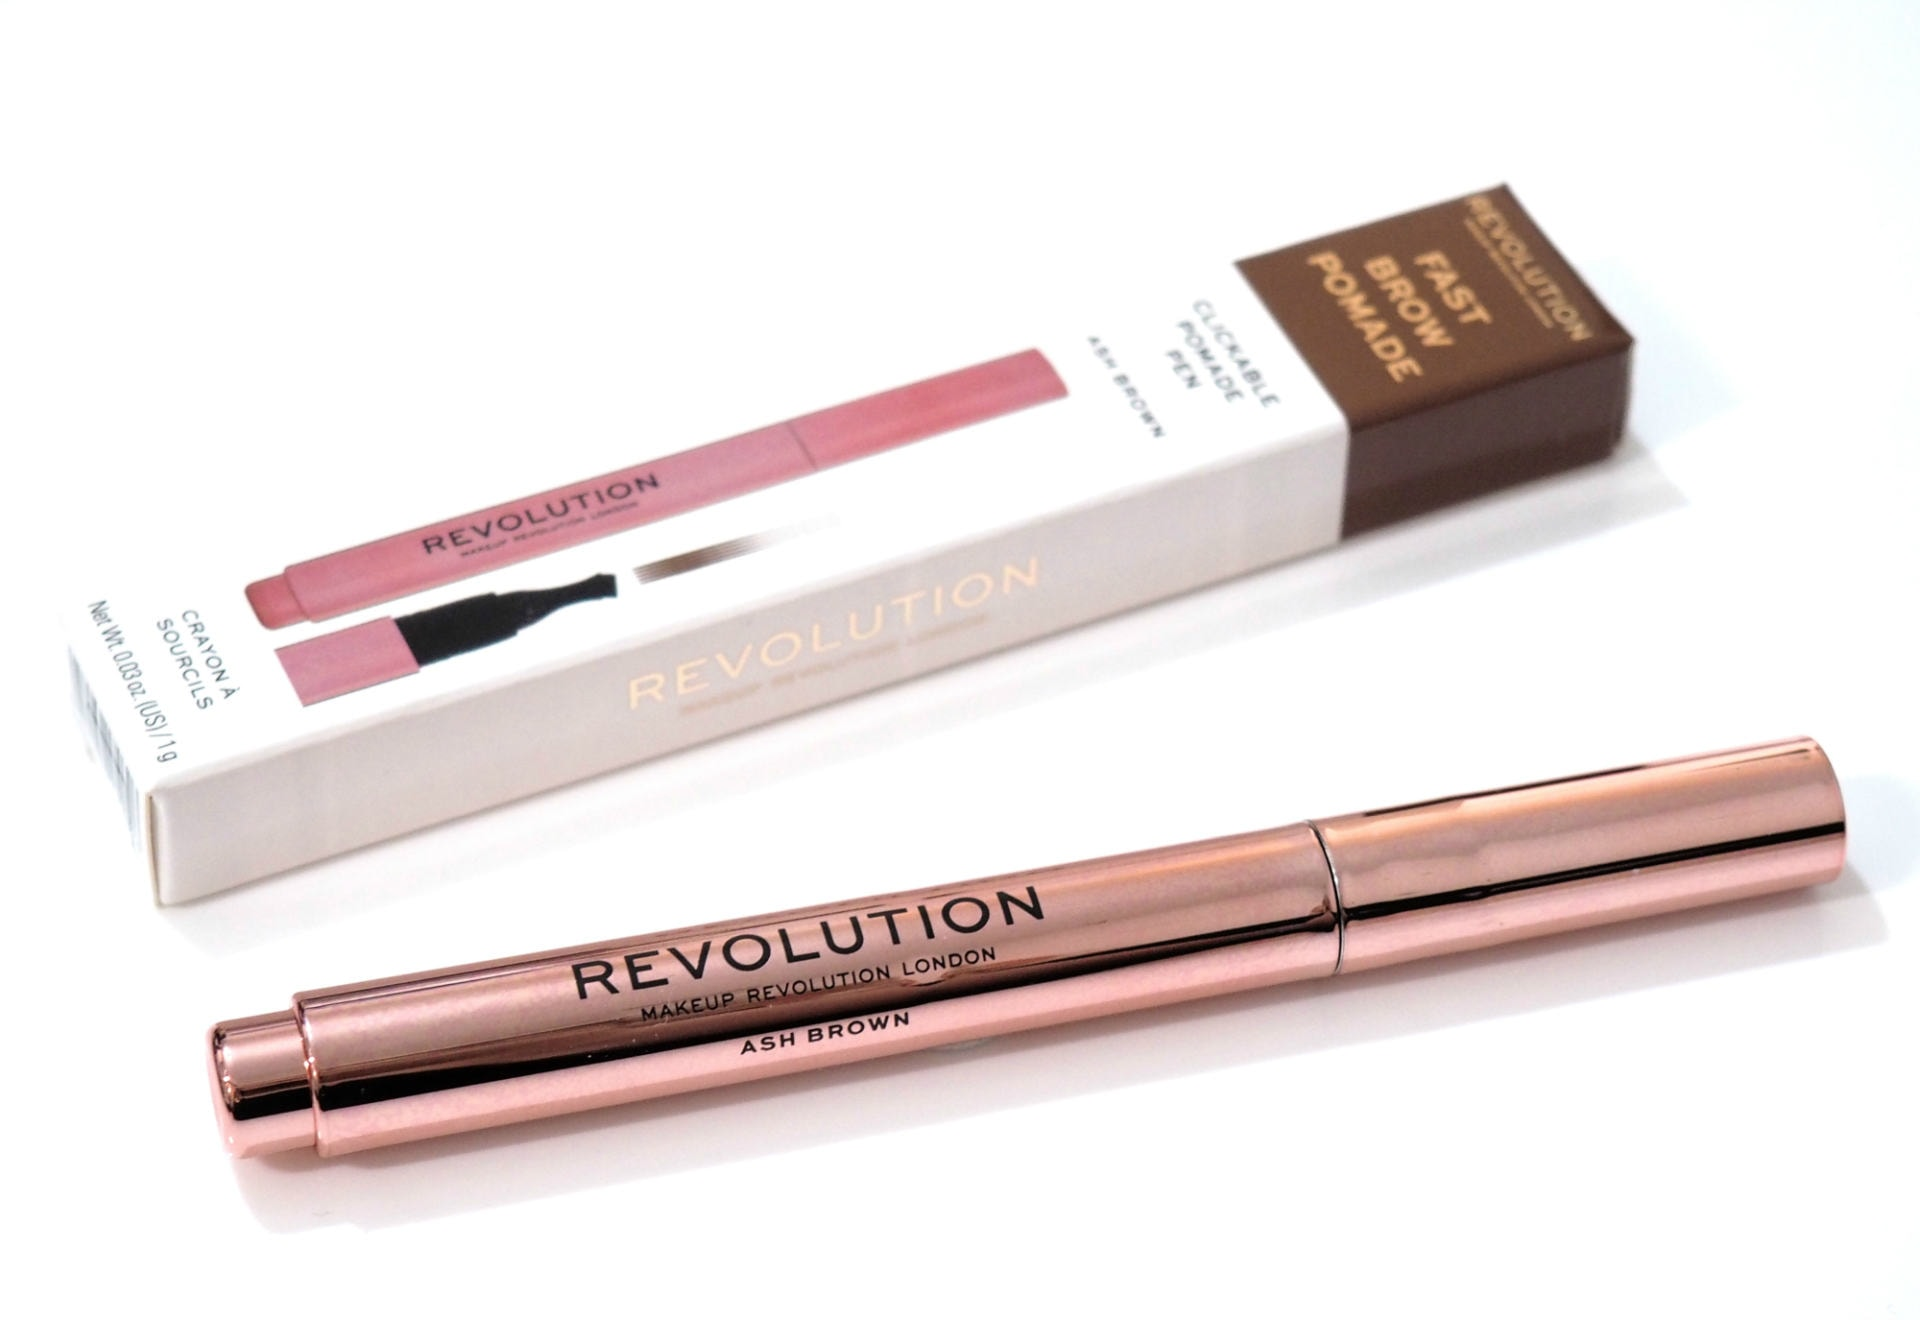 Revolution Fast Brow Pomade Pen Review and Swatches in Ash Brown